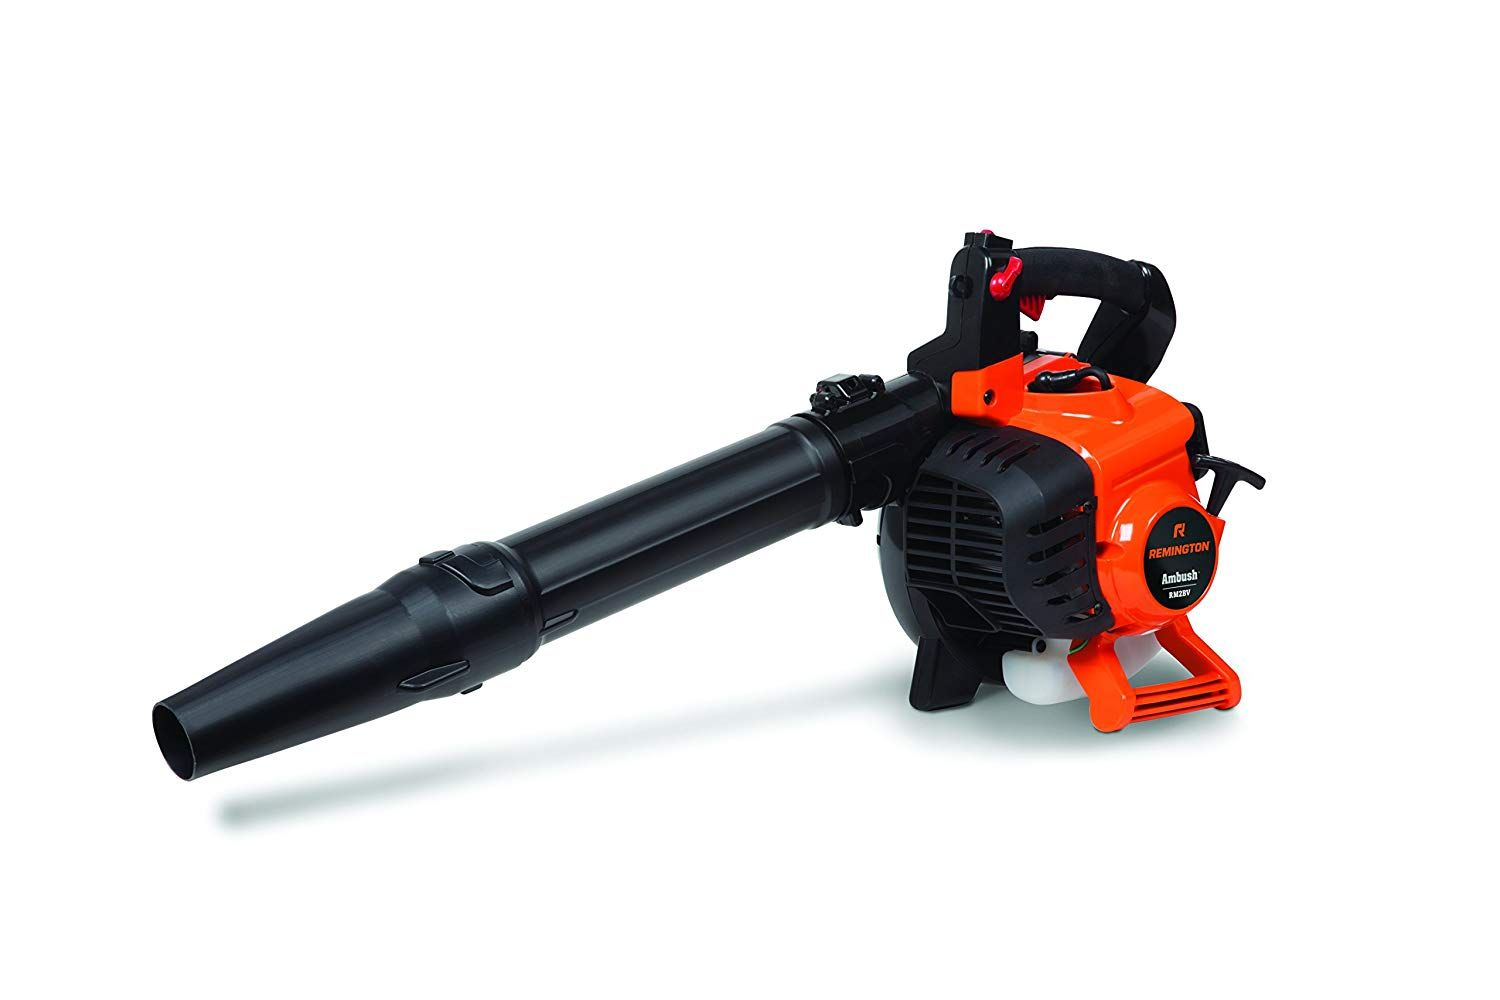 Best Backpack Leaf Blowers Reviews Guide Gas Blowers Leaf Blower Blowers